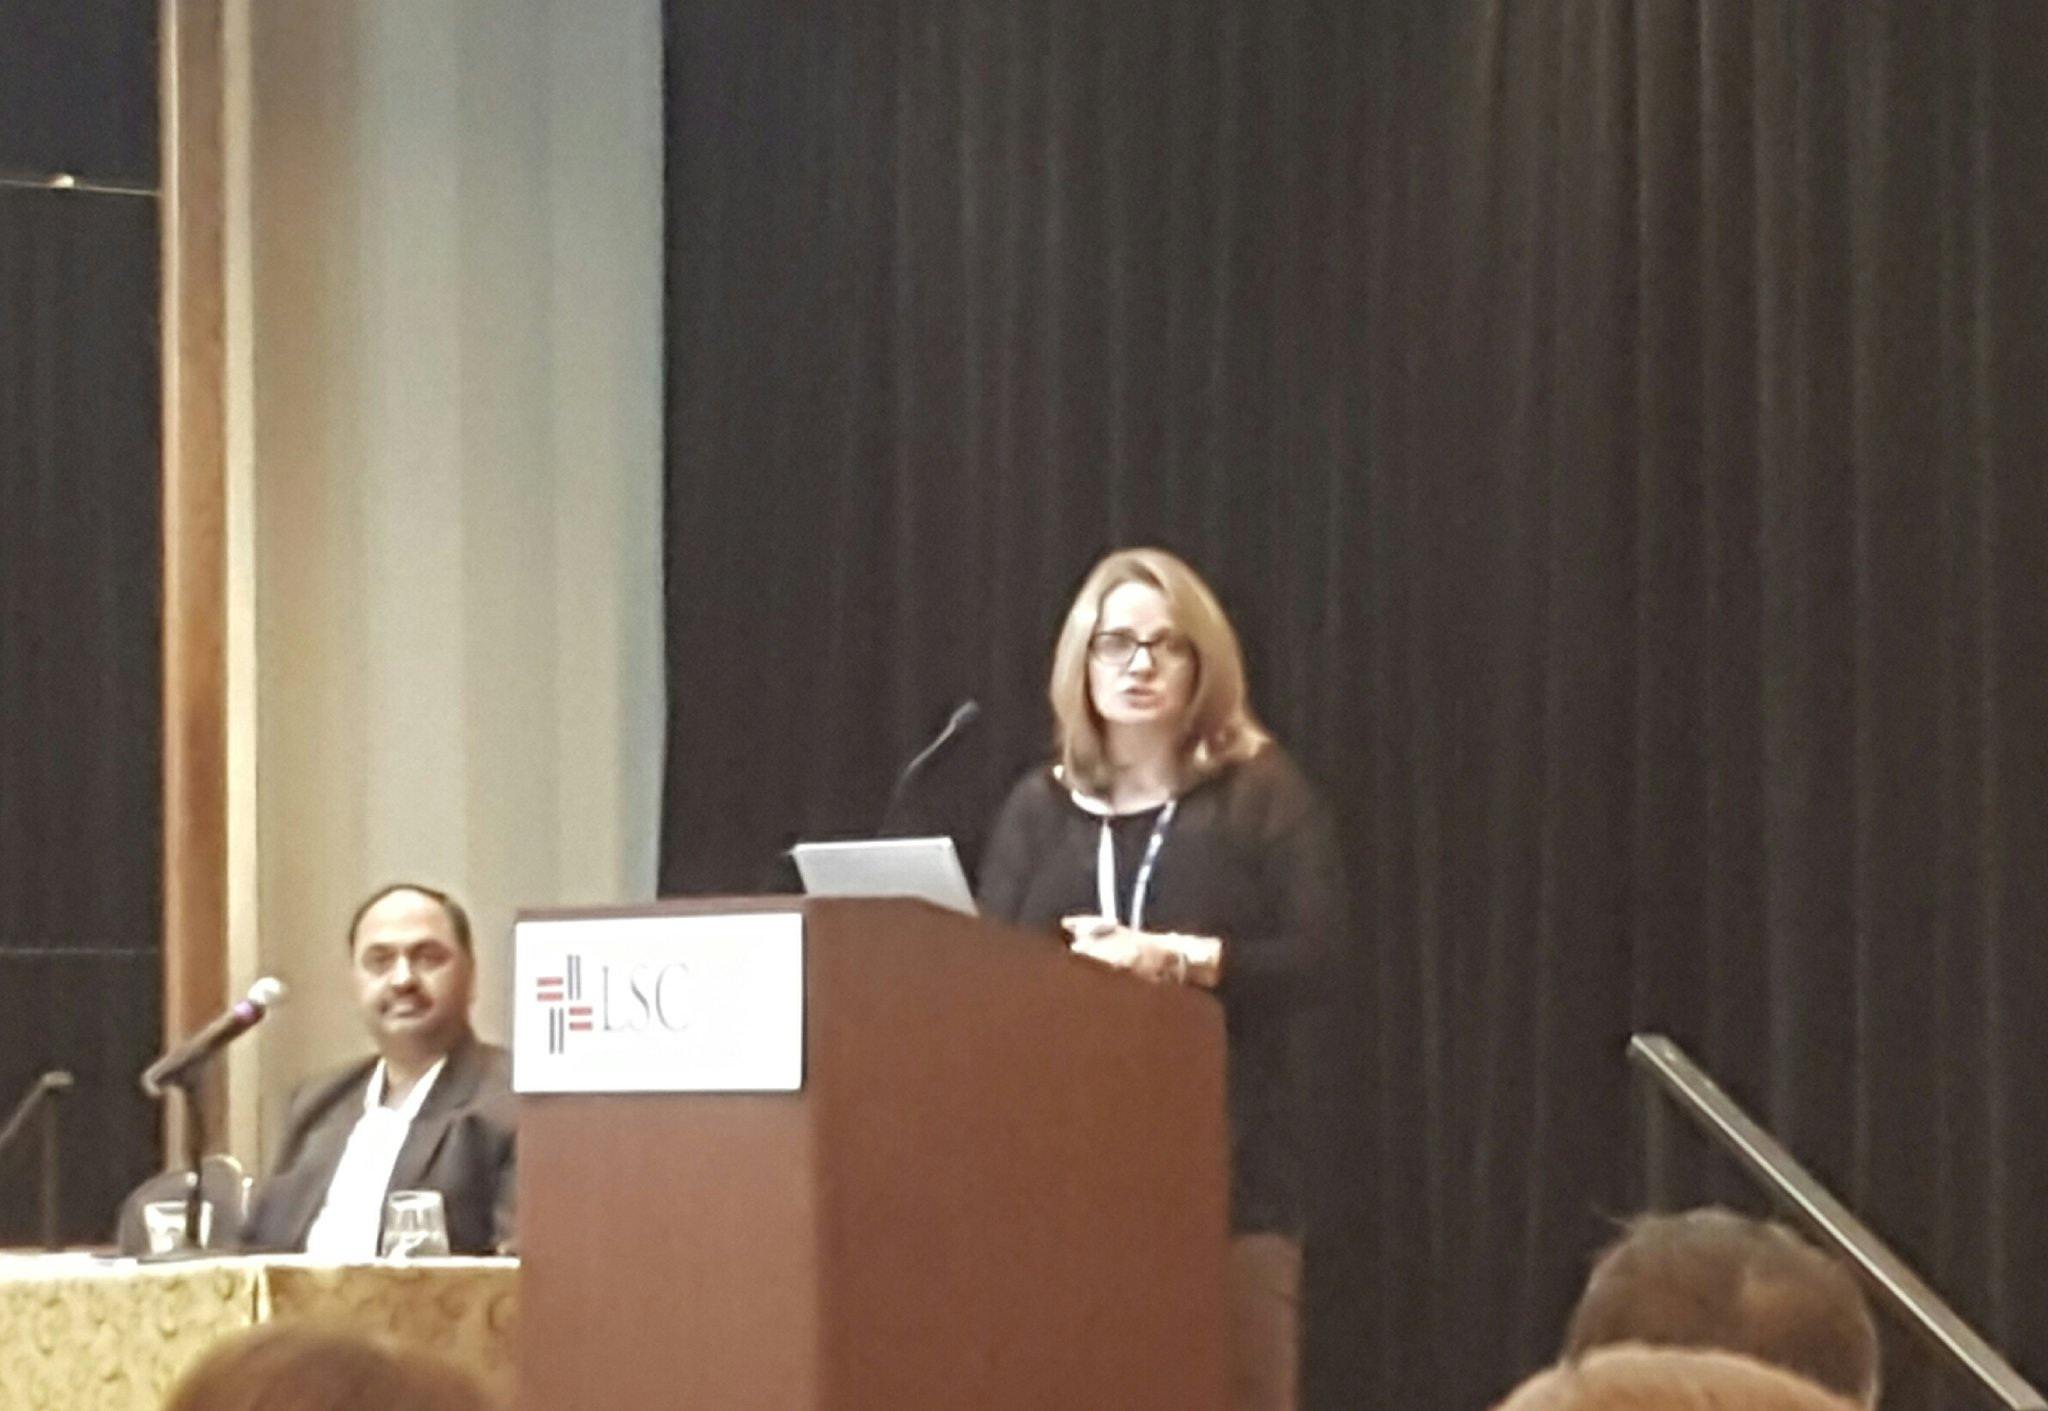 Over 60% of workers have troubles collaborating.  Technology is the answer. It can empower.  @Microsoft's Lucy Bassli #LSCTIG #tig2017 https://t.co/T0EsQQkXMA